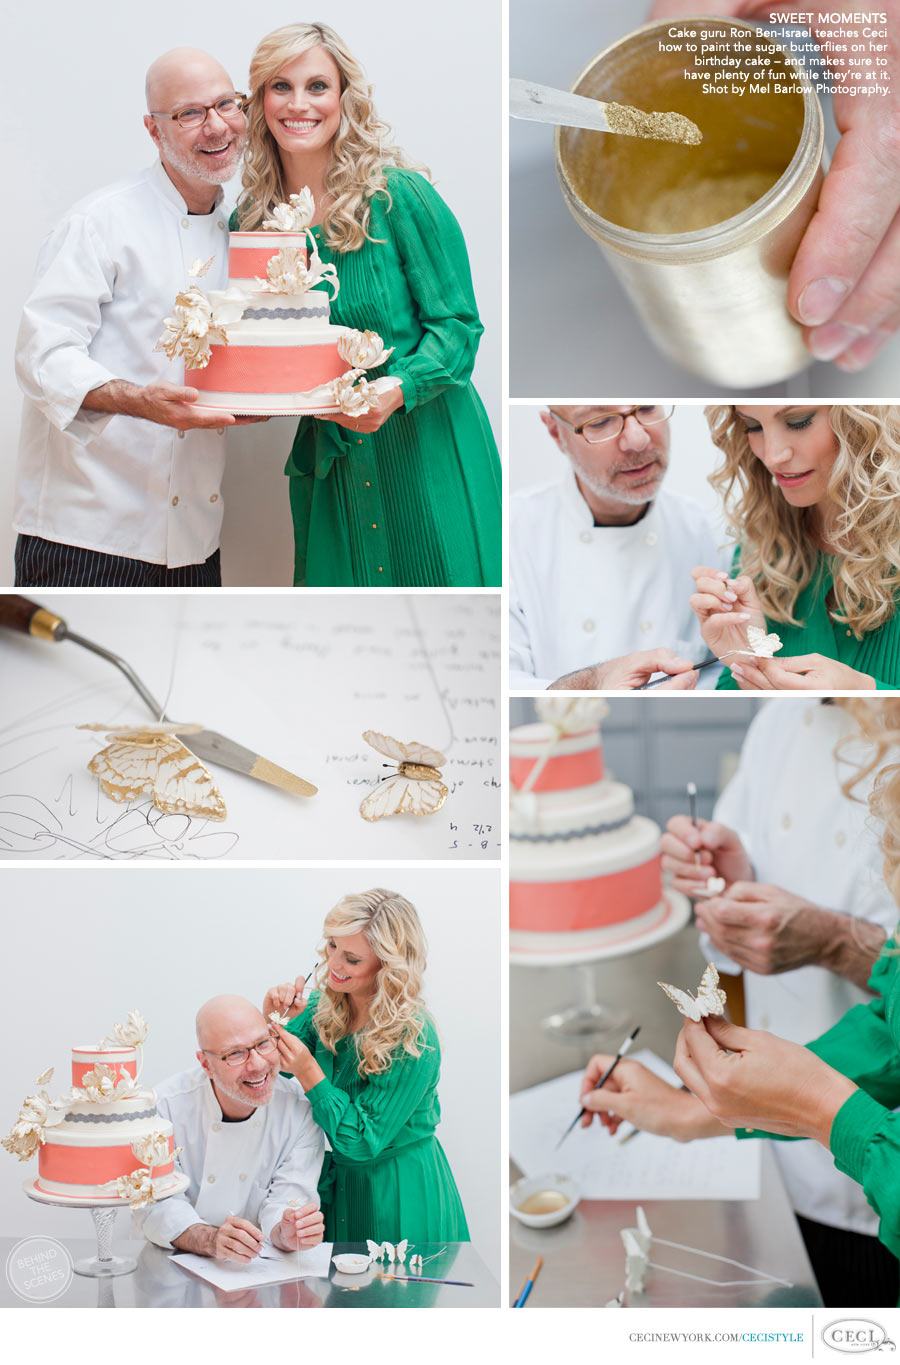 Ceci Johnson of Ceci New York - SWEET MOMENTS: Cake guru Ron Ben-Israel teaches Ceci how to paint the sugar butterflies on her birthday cake - and makes sure to have plenty of fun while they're at it. Shot by Mel Barlow Photography.